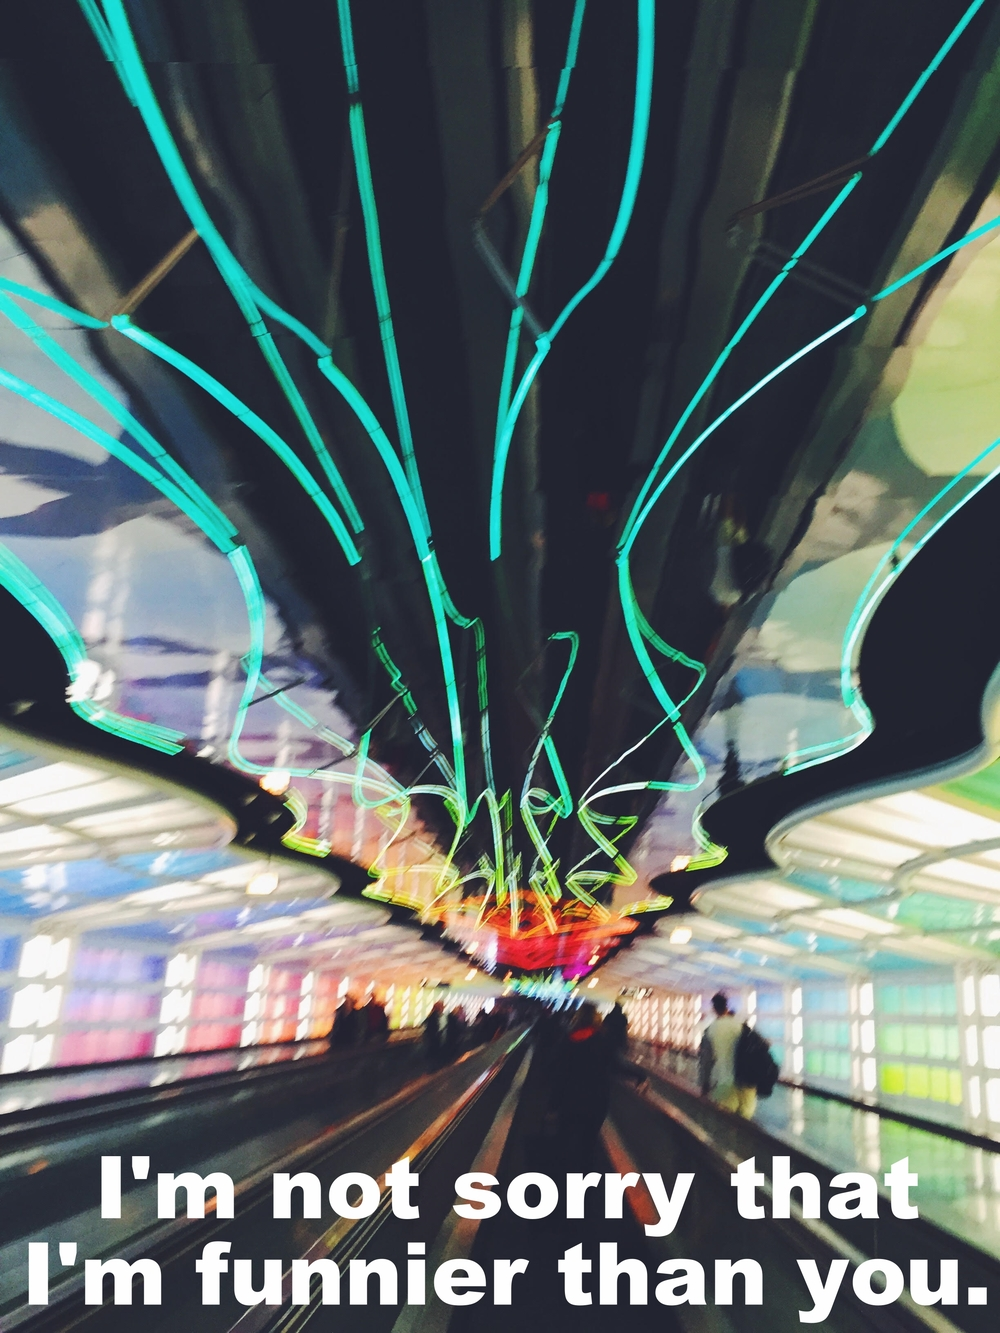 "Caroline March 24 2016 Slightly blurry image of a long hallway. There are several moving walkways running down the middle of the hallway, each with a few people on it. Rainbow colored lights span the length of the ceiling and are reflected in glass panels along the walls. ""I'm not sorry that I'm funnier than you"" is overlaid."